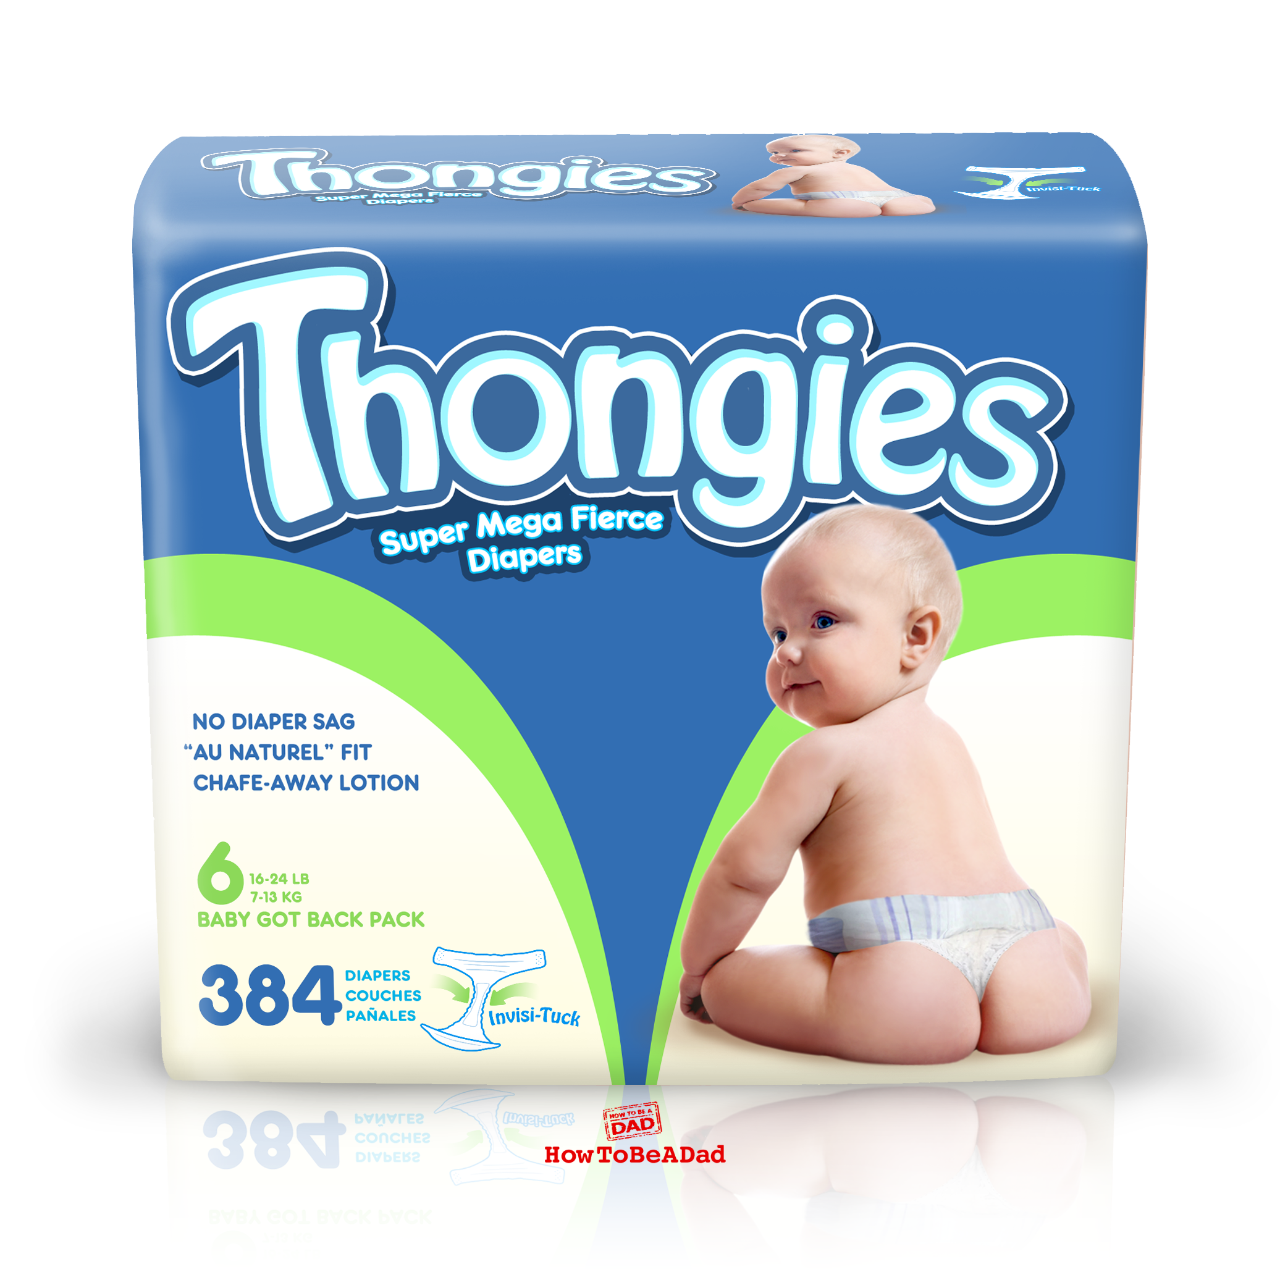 Thongies Diaper Thongs funny bad baby product